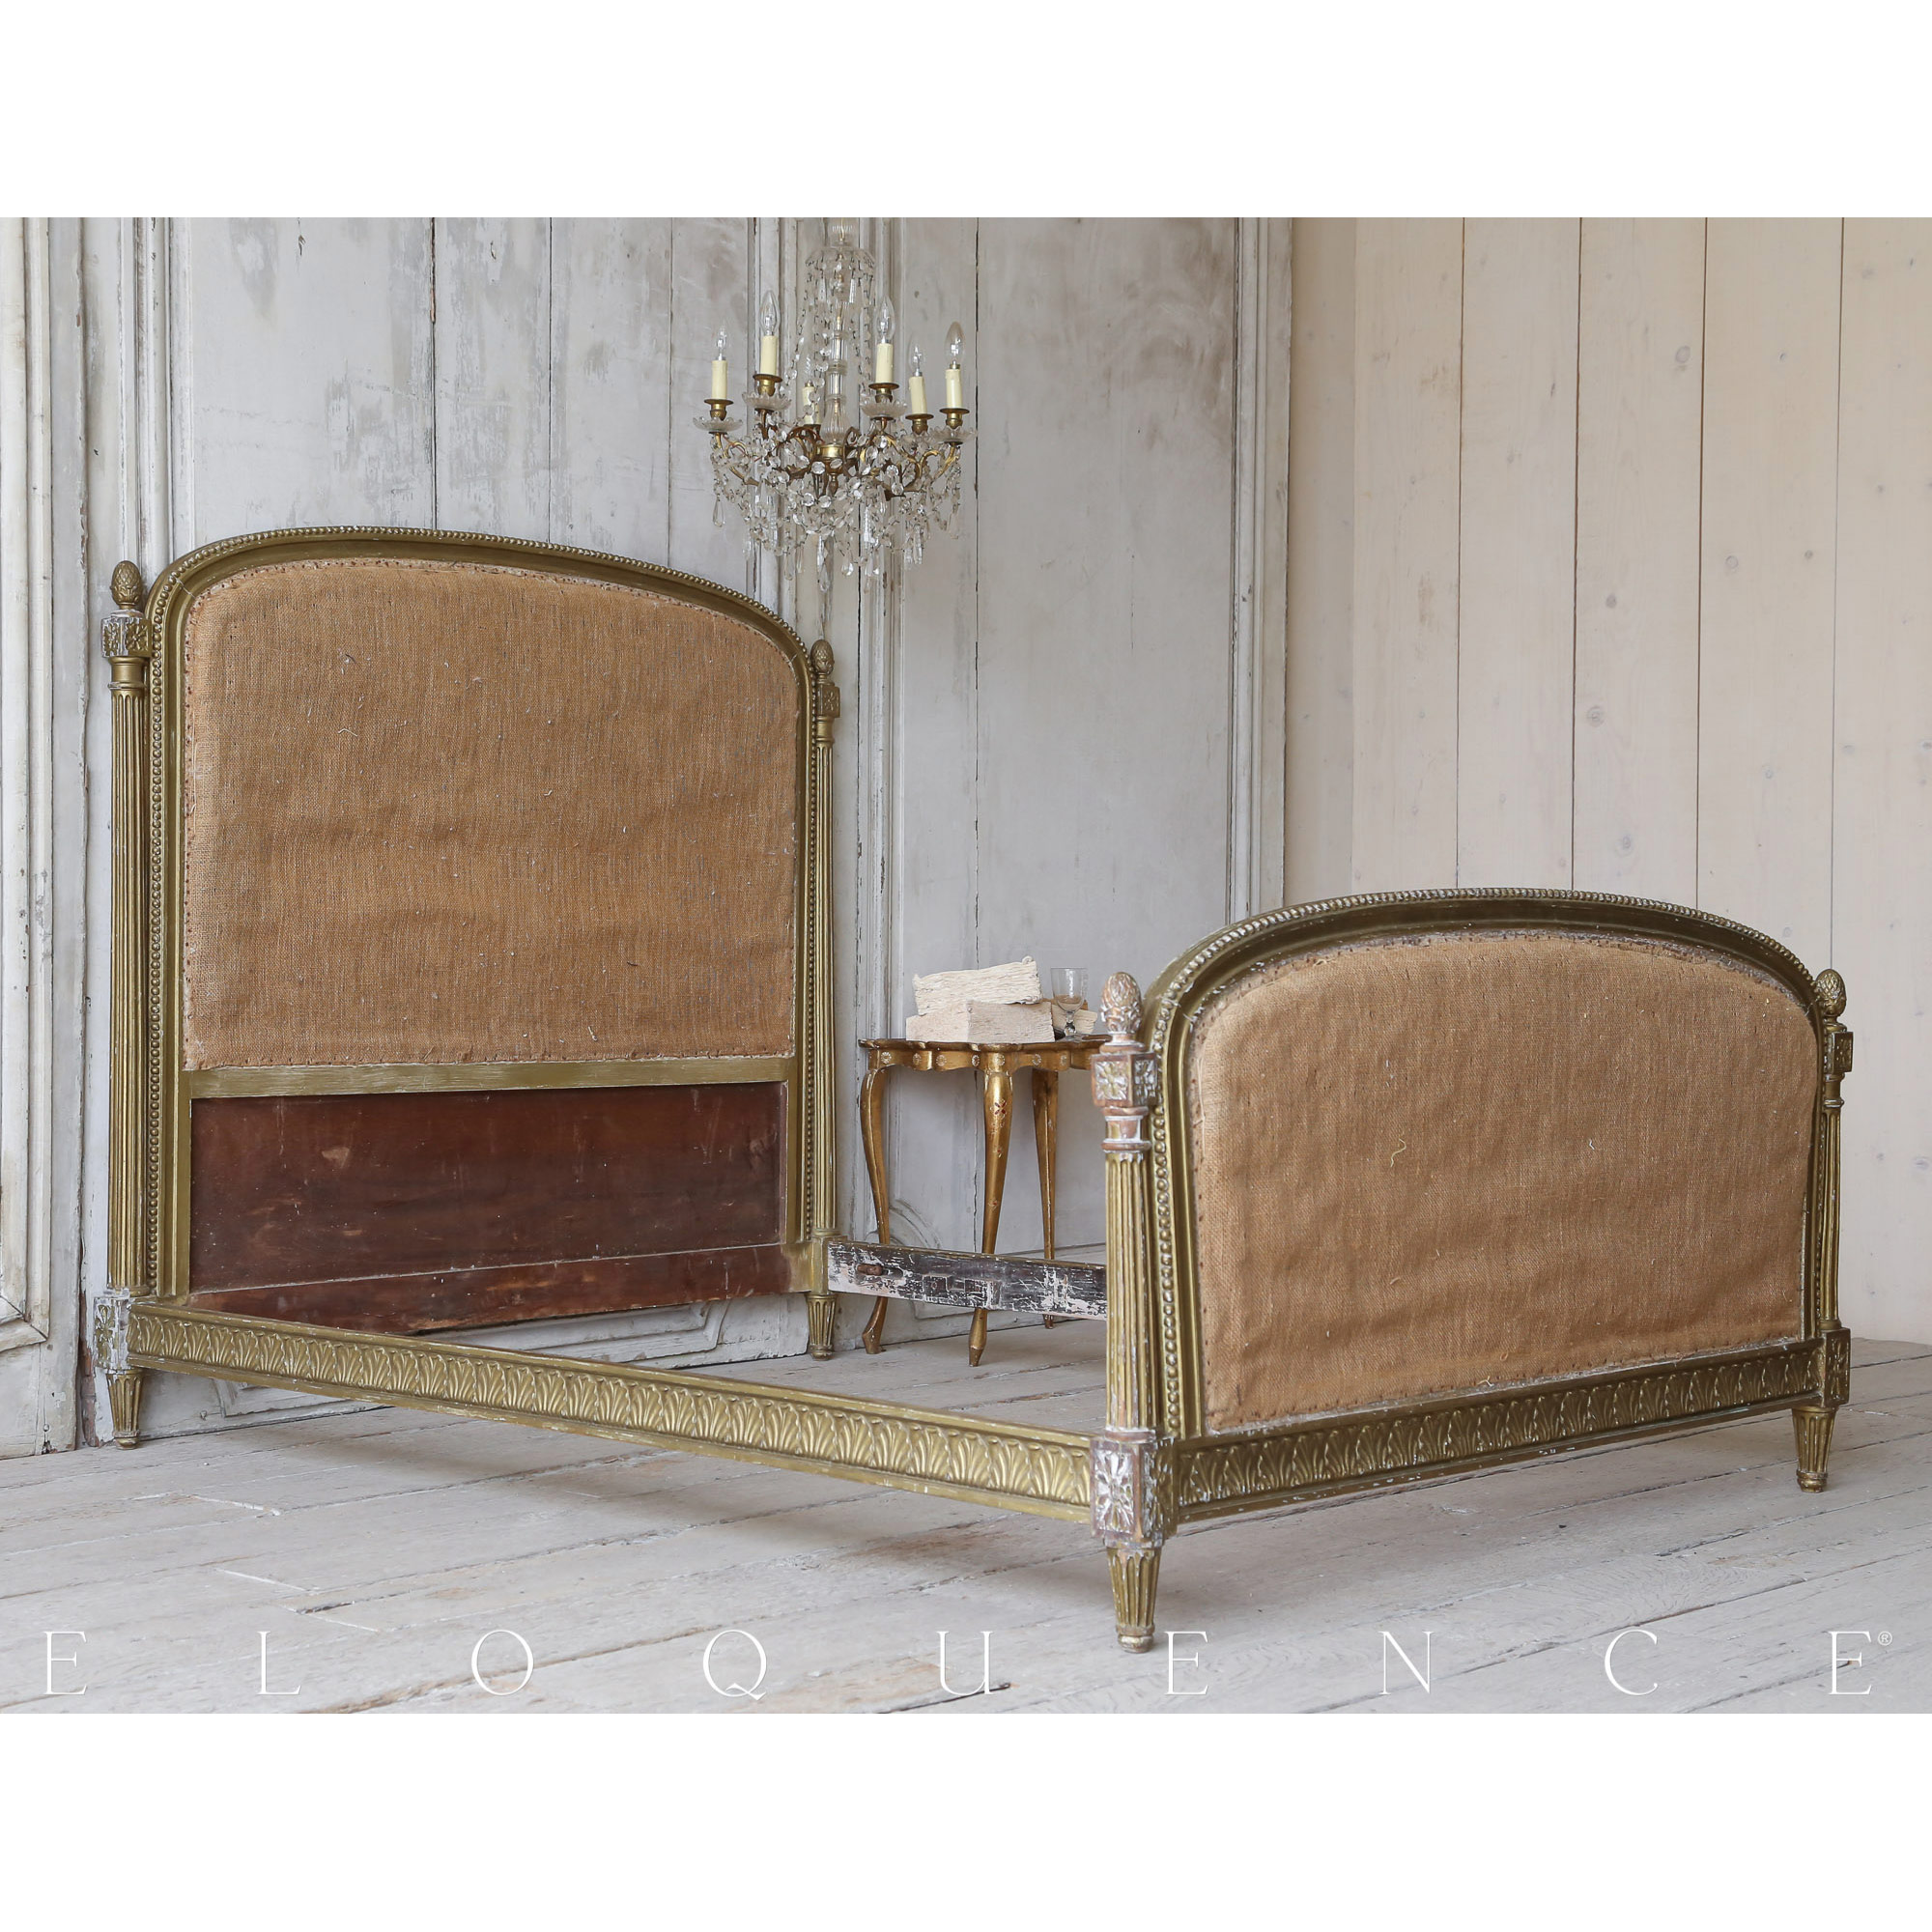 of home murphy bedding for decor image beds invisibleinkradio the antique bed